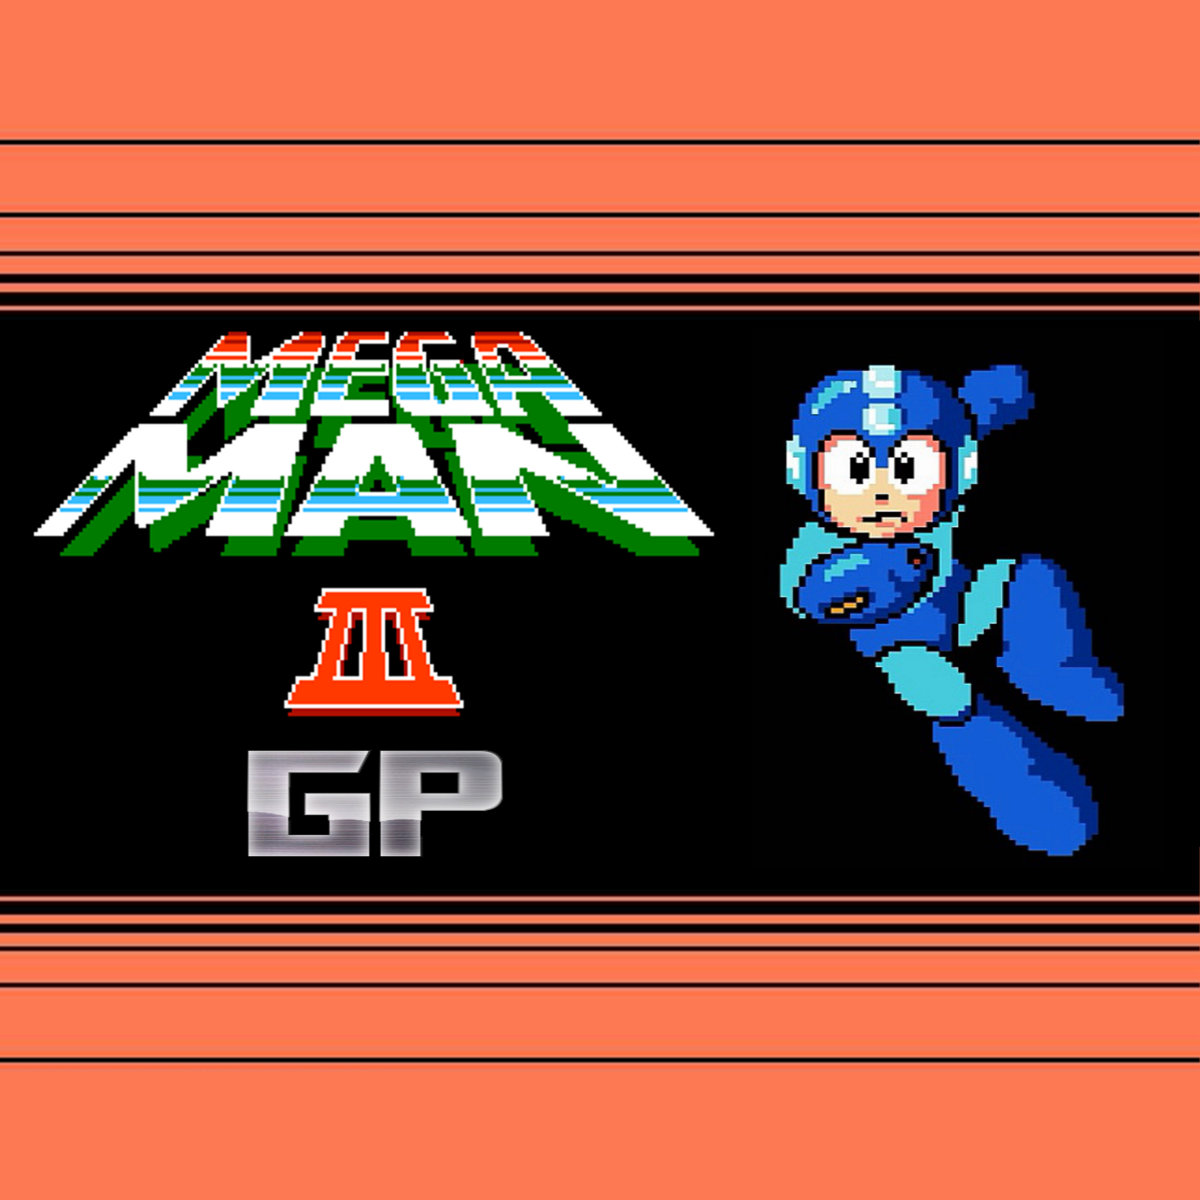 Mega man x7 4 17 one tenth of crowrangs health mp3 download b6ny. Com.